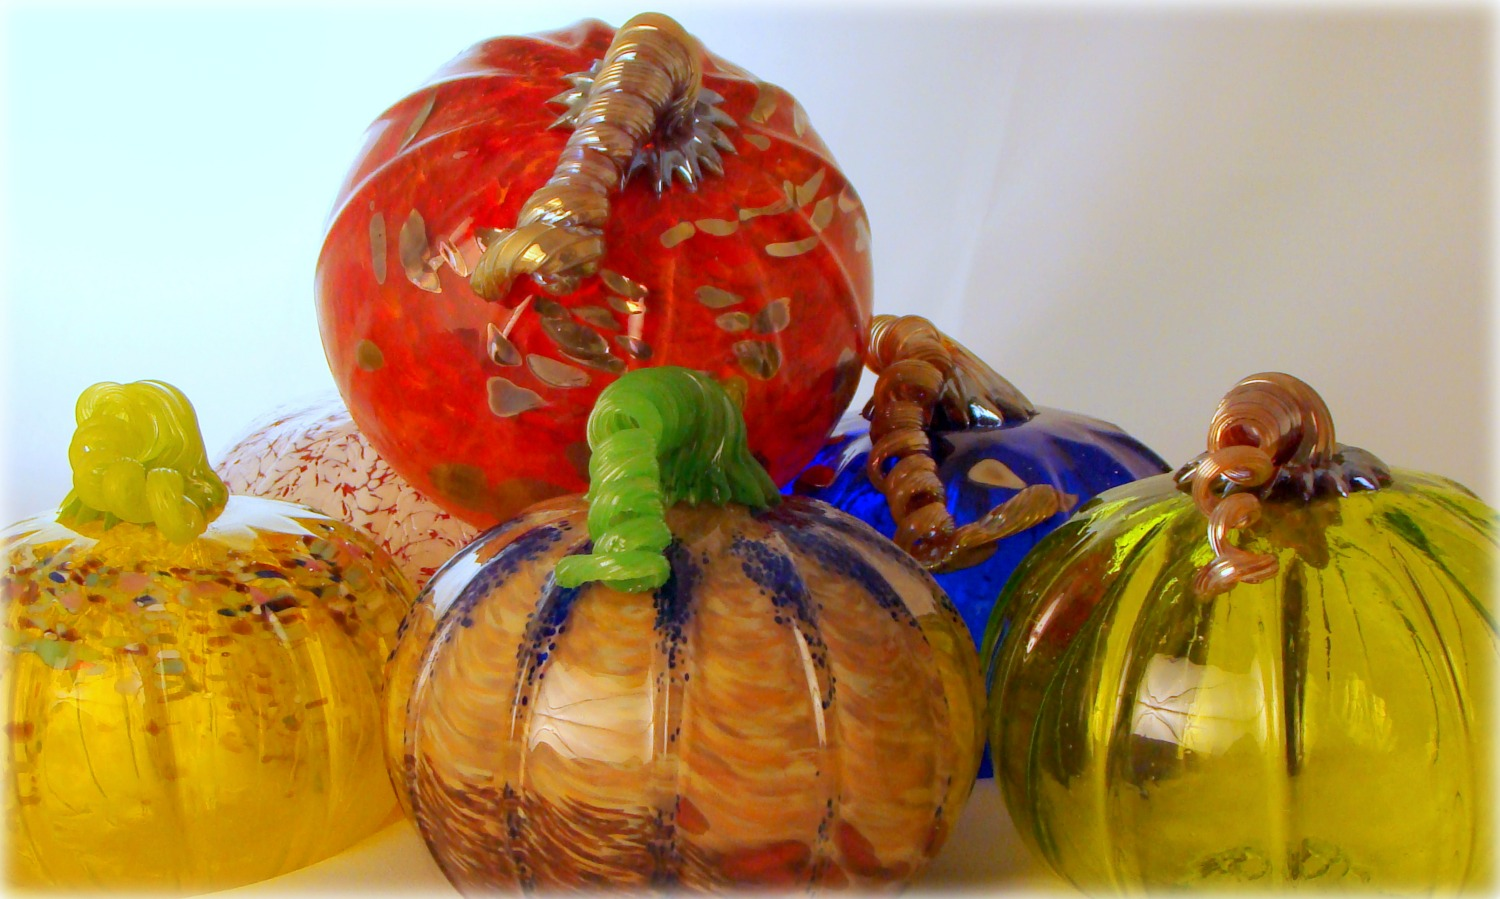 Glass Blowing Classes - Sign Up Early for the Best Times